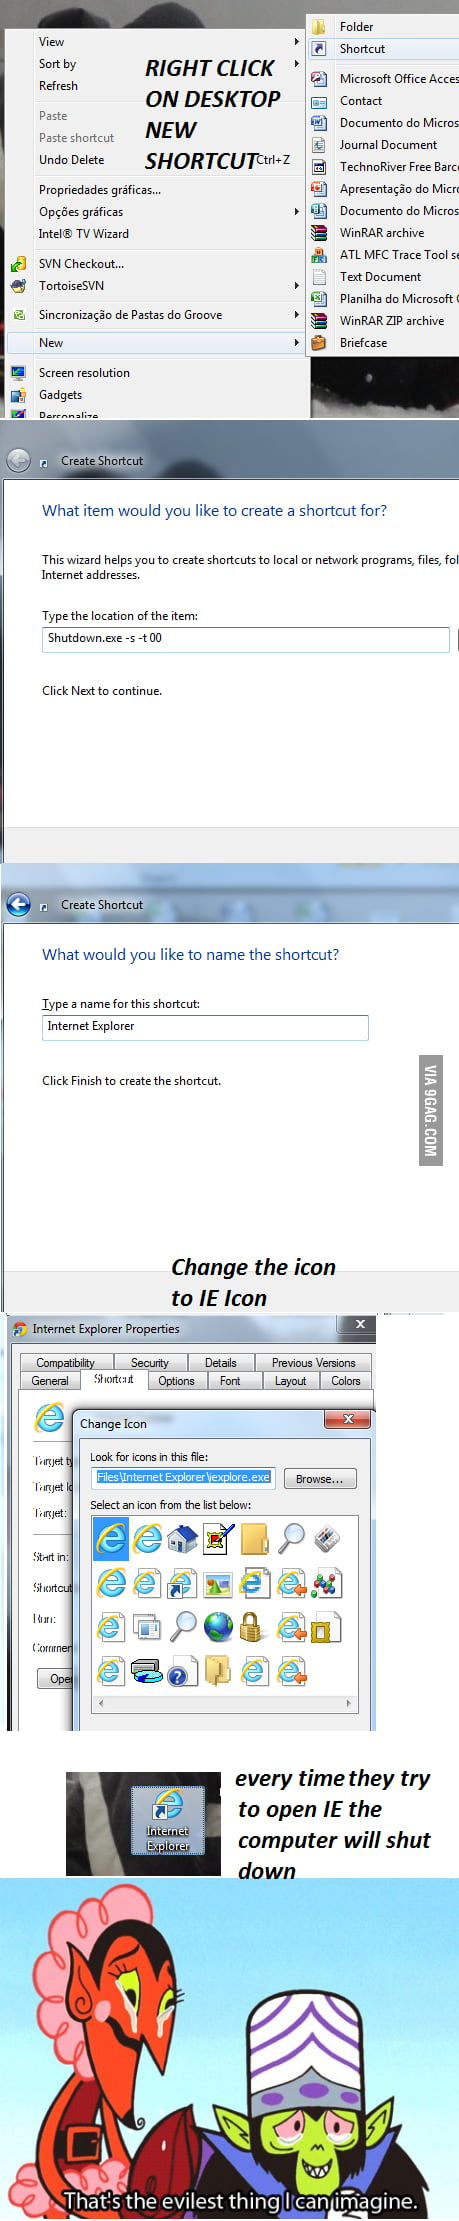 How make someone stop using IE